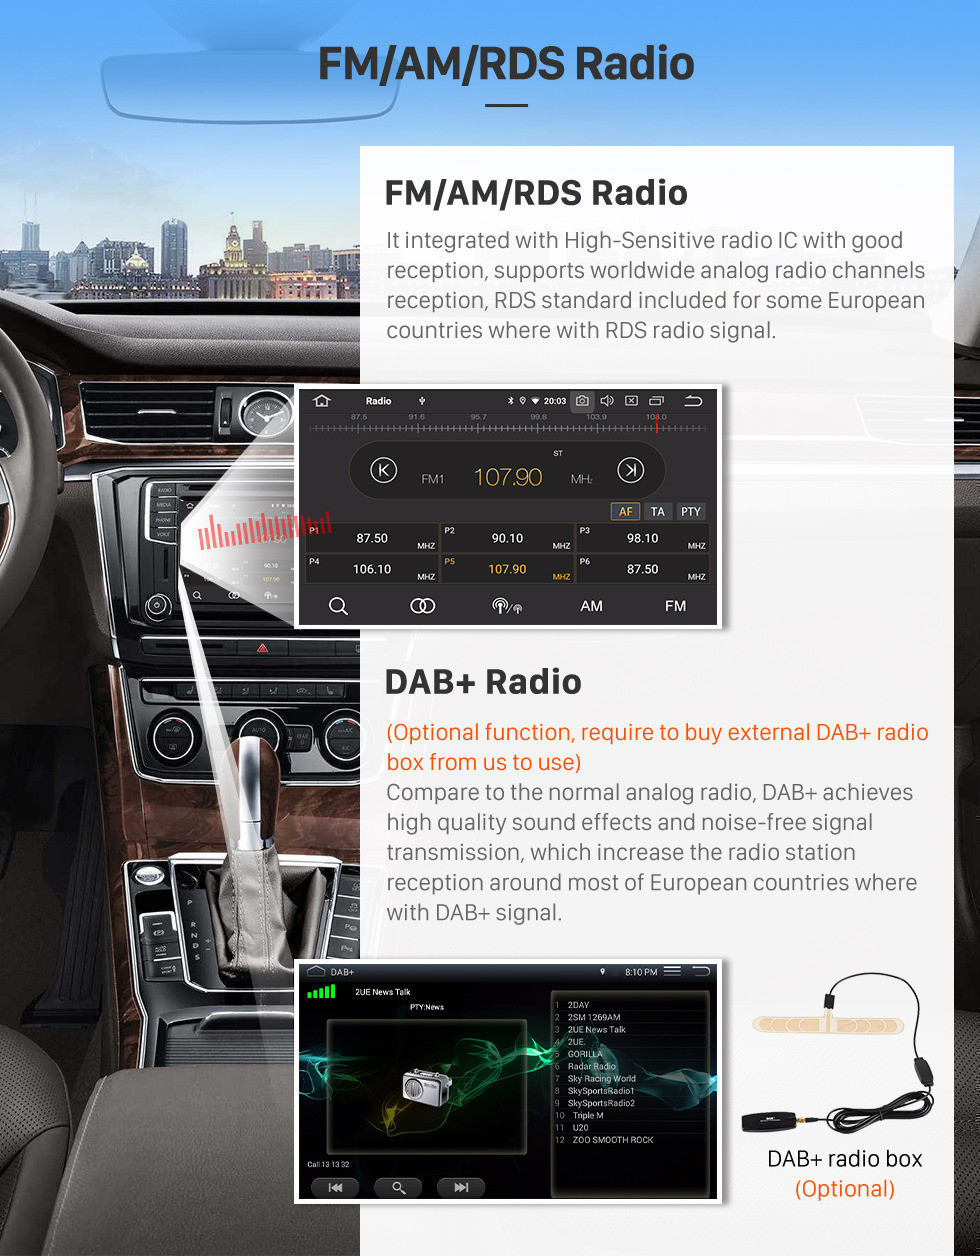 Seicane 10.1 Inch HD Touch Screen Android 10.0 Car Stereo Radio For 2012-2017 TOYOTA CAMRY GPS Navigation Bluetooth 4G WIFI Support Rear View Camera Steering Wheel Control DVR OBD2 TPMS FM AM 1080P Video